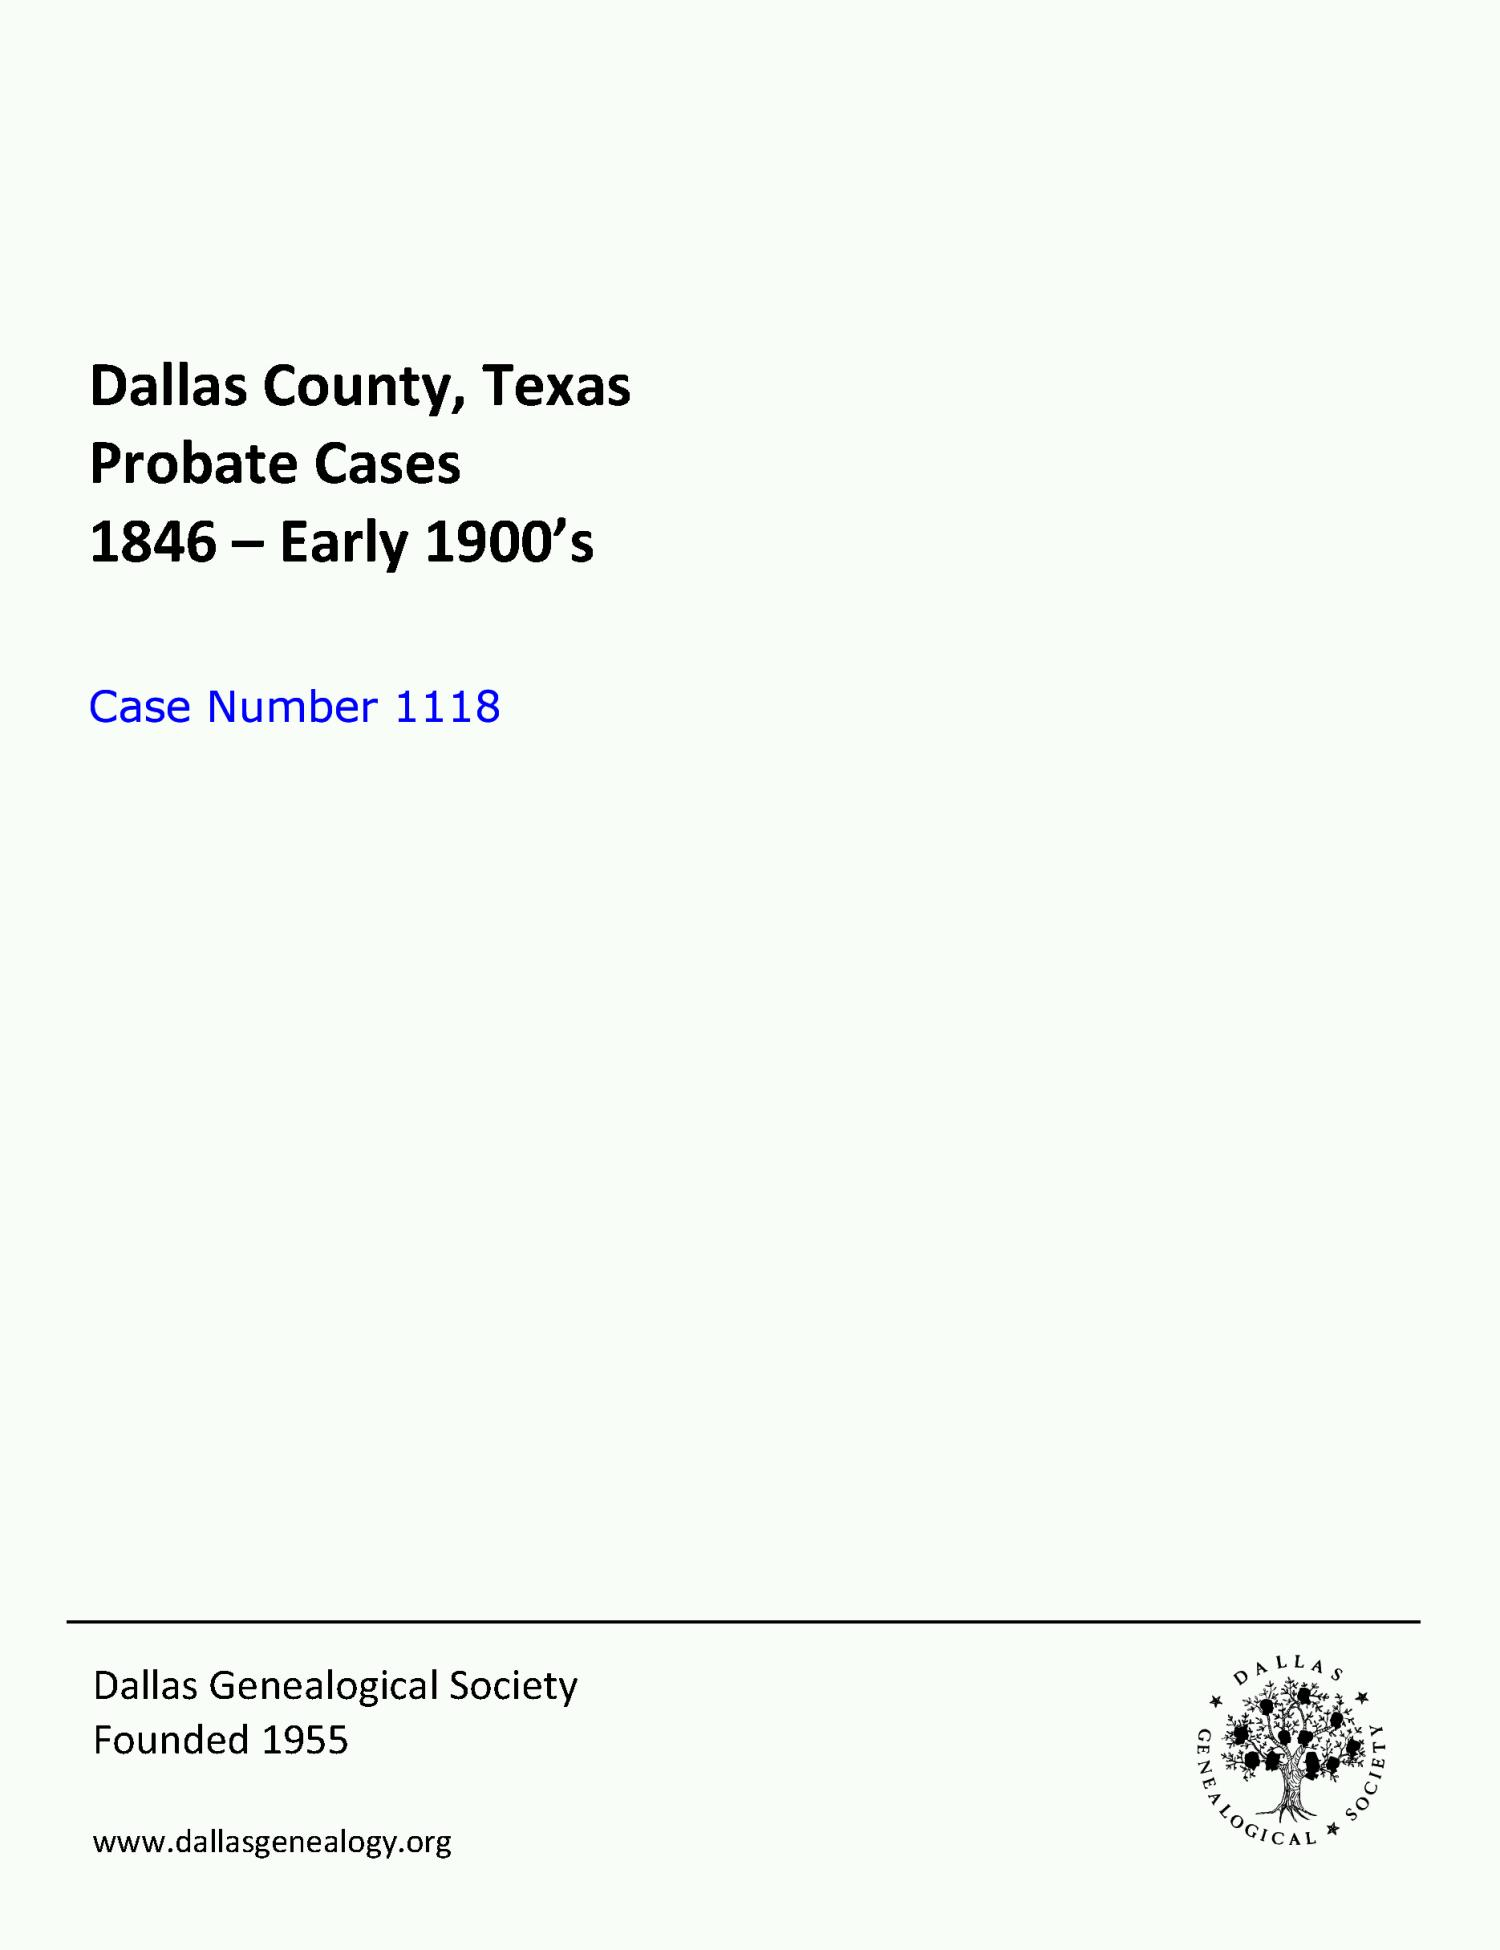 Dallas County Probate Case 1118: Hale, Alex (Deceased)                                                                                                      [Sequence #]: 1 of 16